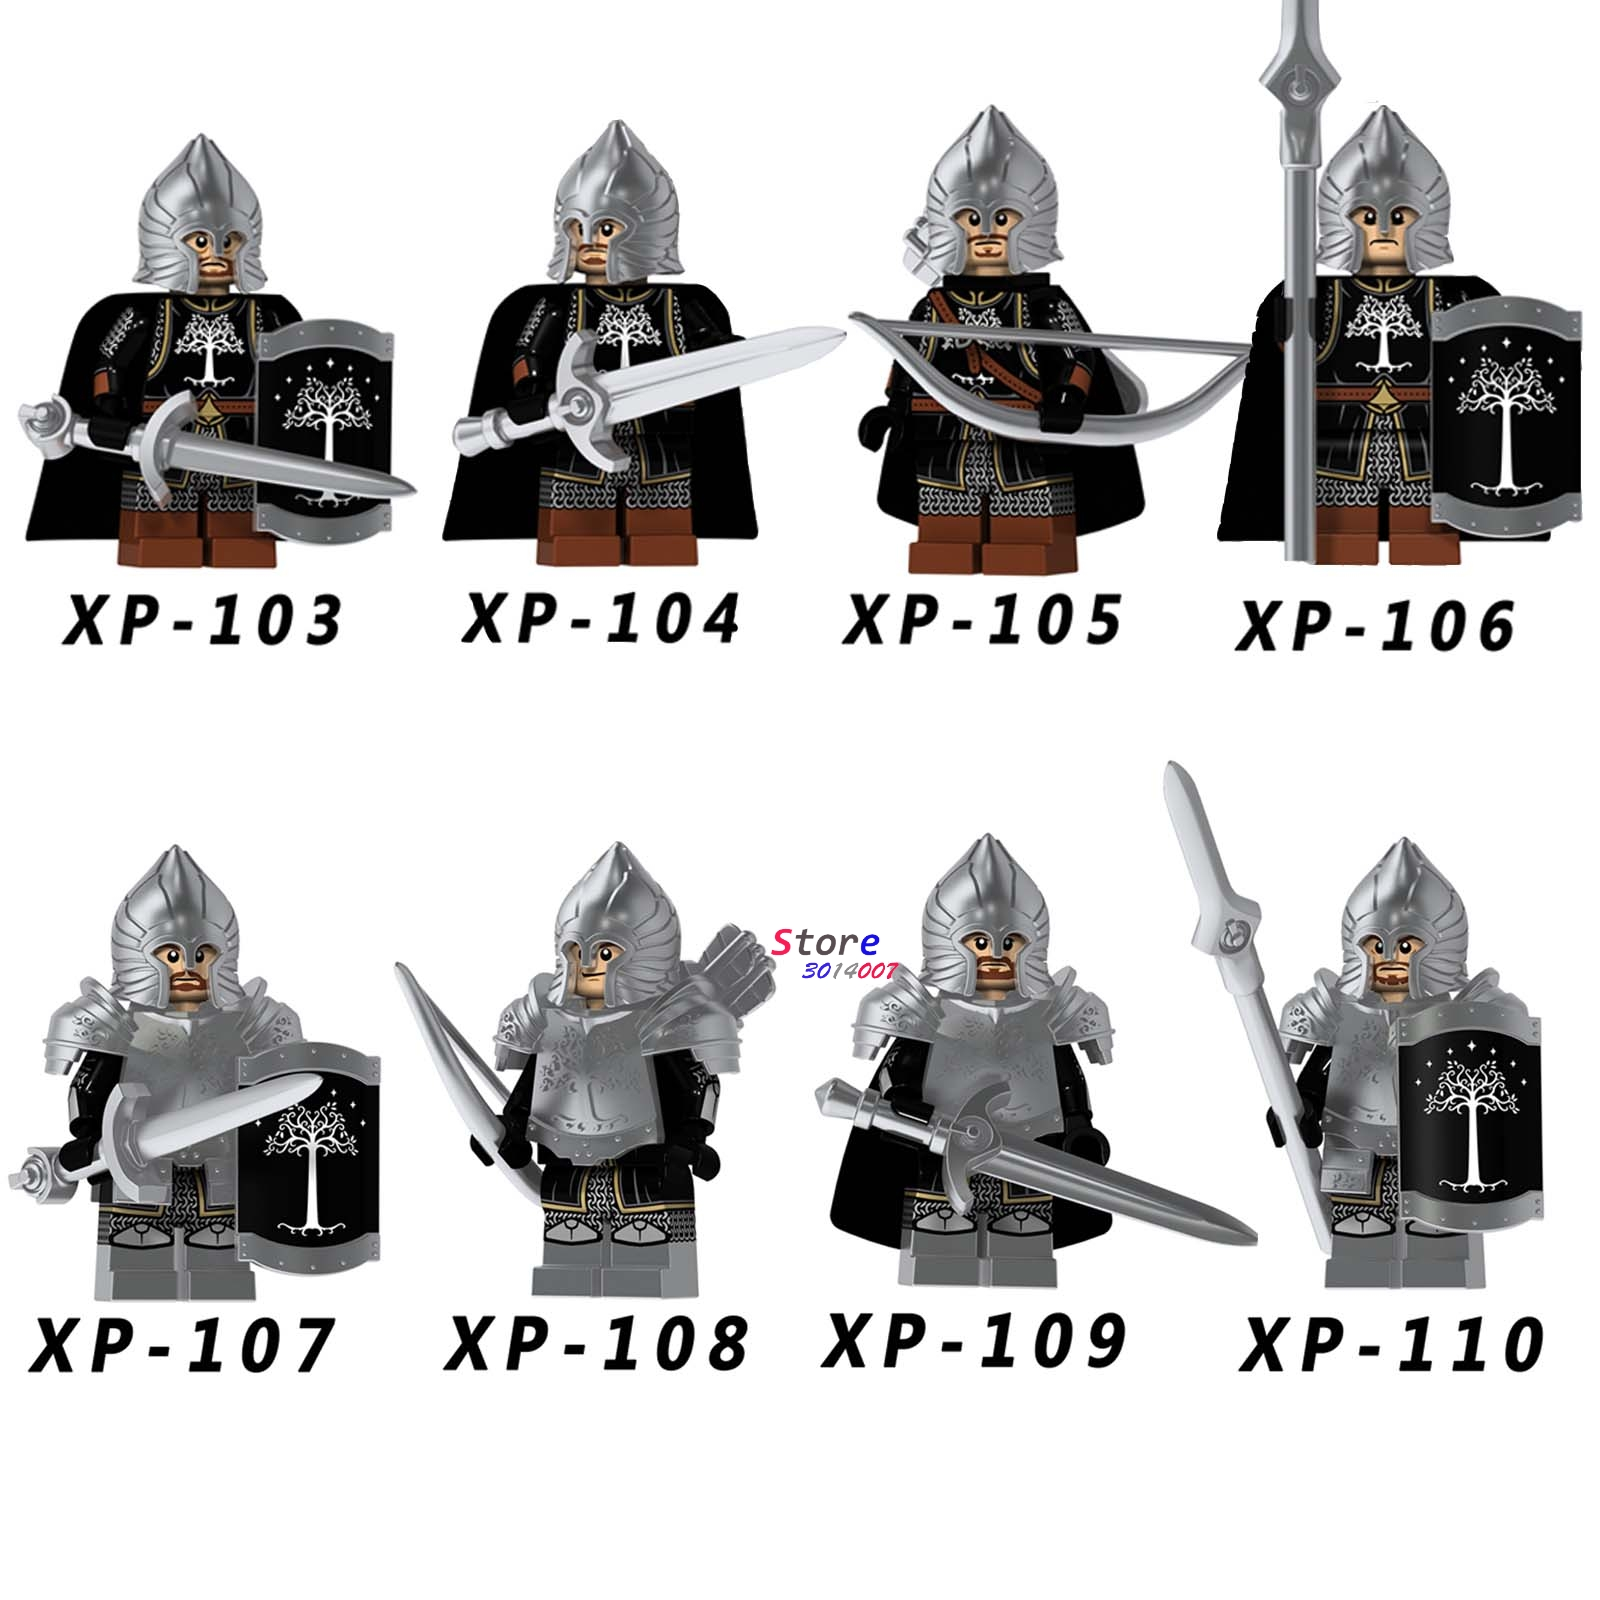 Single Medieval Knight Lord Of The Rings Of Gondor Spear Archer Sword Model Building Blocks Bricks Toys